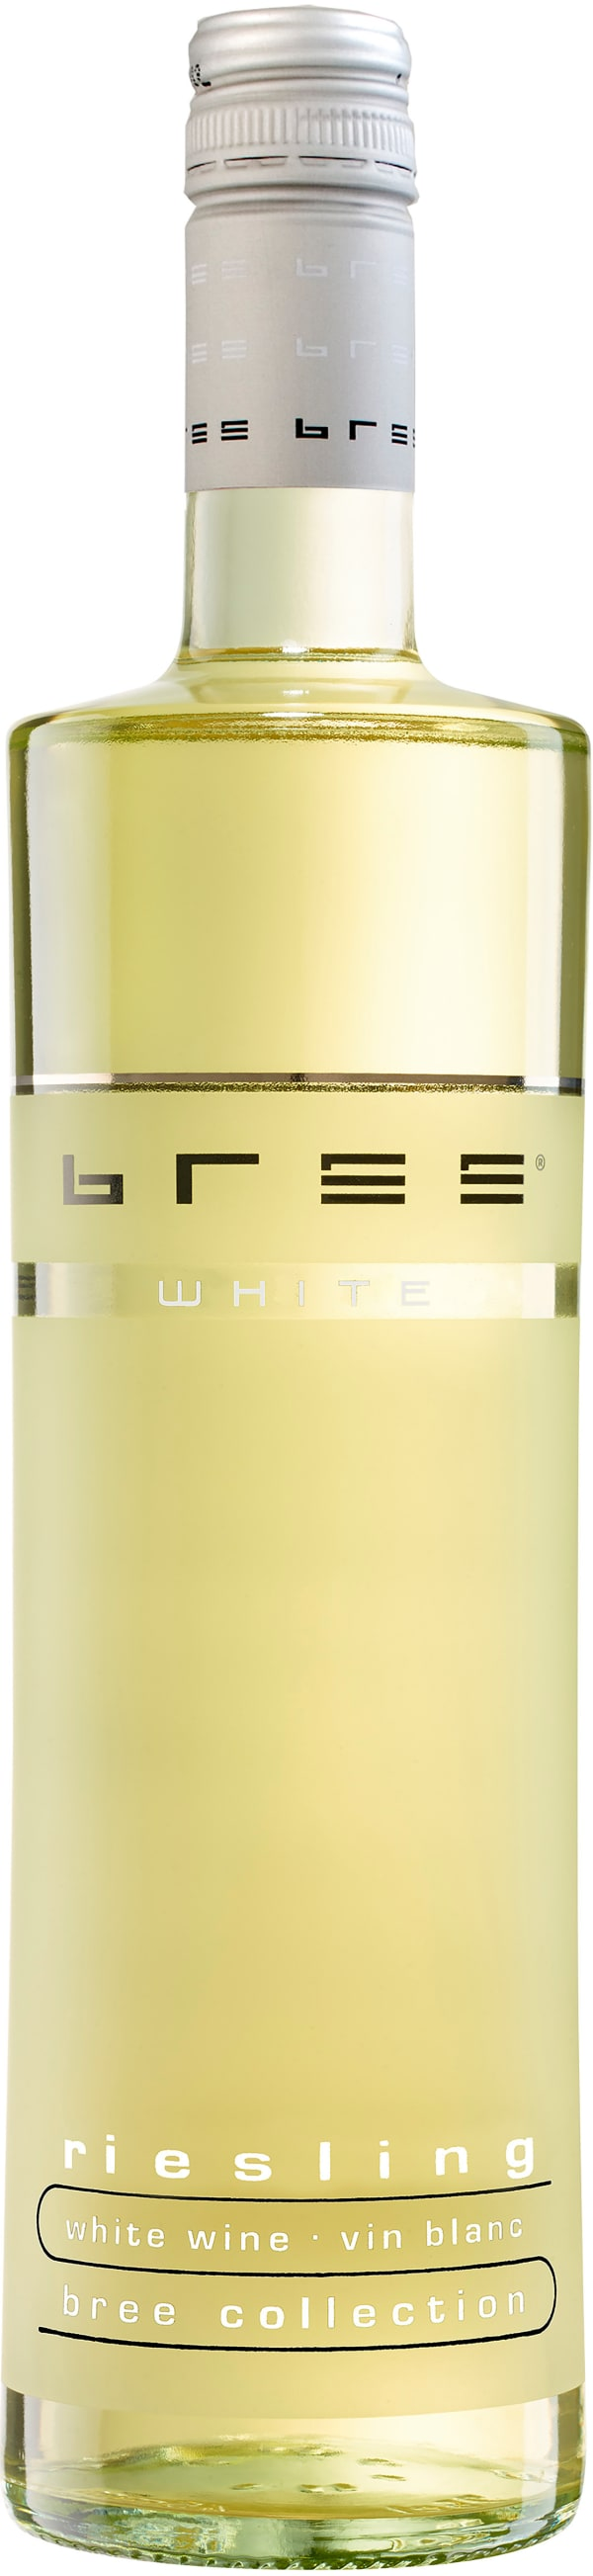 Bree White Riesling 2019